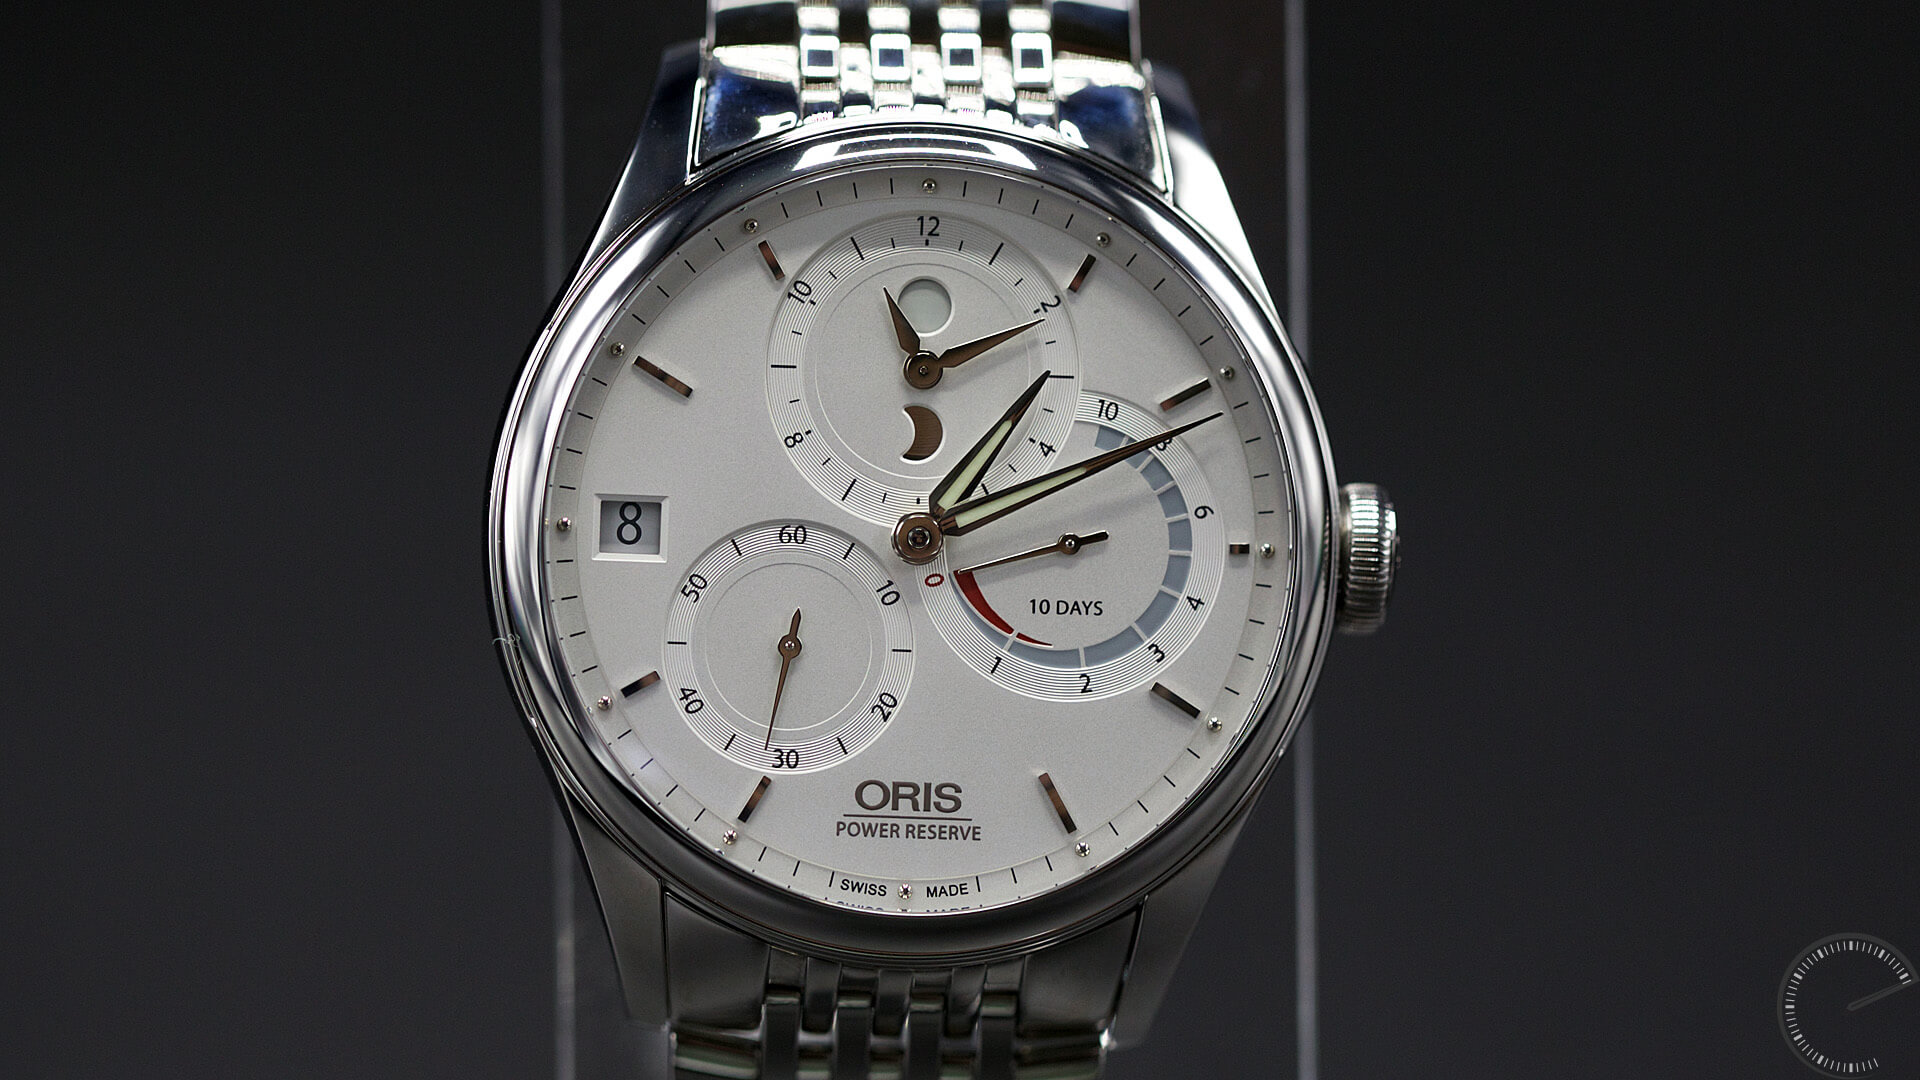 Oris_Artelier_Calibre_112_dial3 - ESCAPEMENT MAGAZINE - watch reviews by Angus Davies